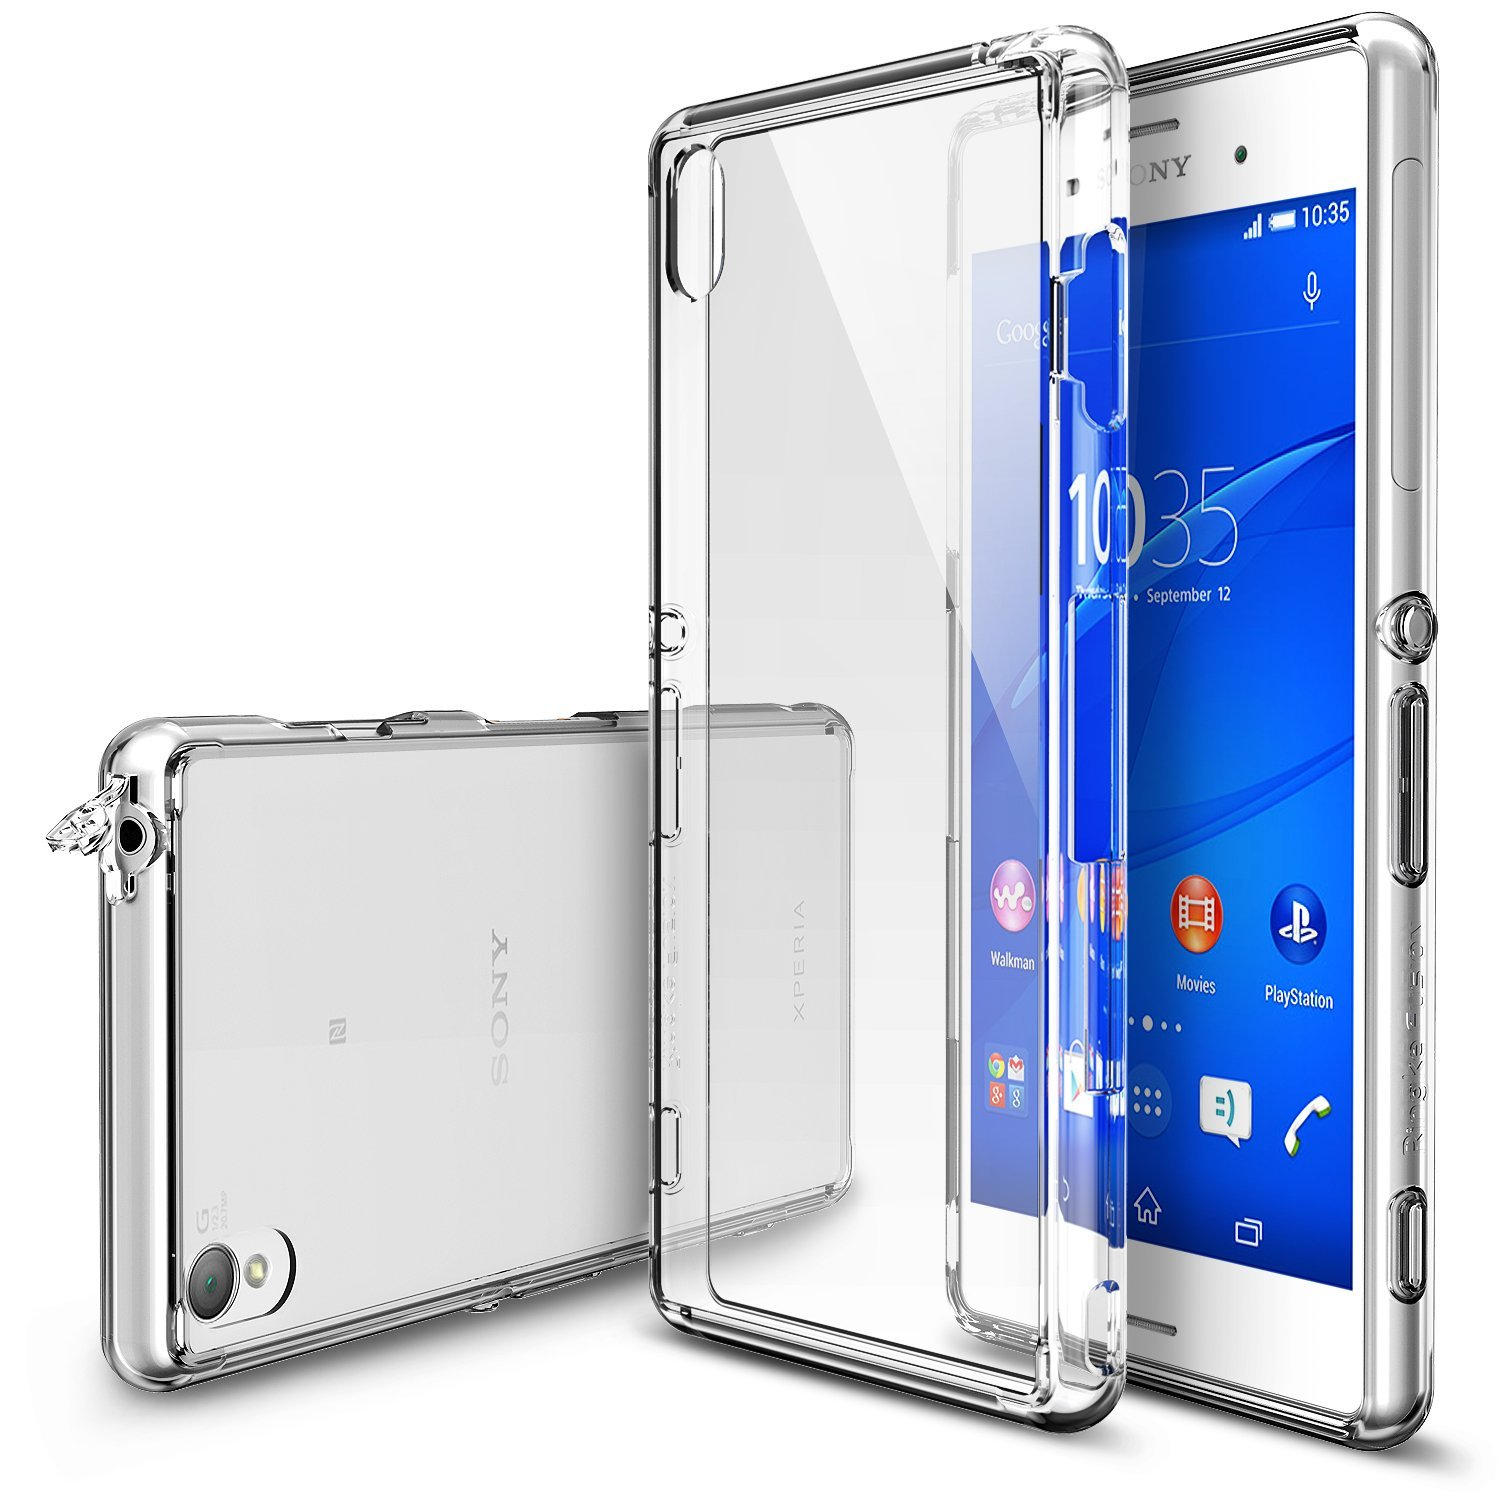 Sony Xperia Z3+ Case - Ringke FUSION Series [Clear] Shock Absorption Bumper Premium Hybrid Hard Case